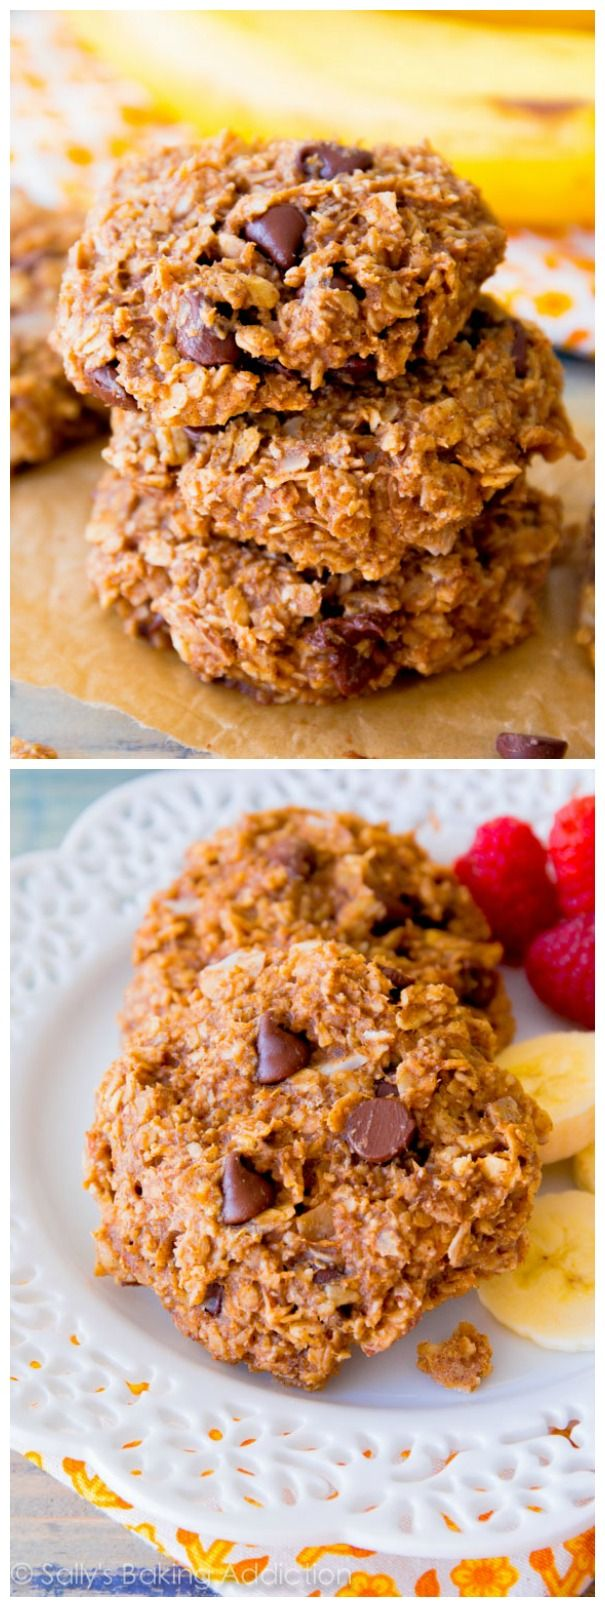 Healthy Banana Chocolate Chip Cookies with almond butter, banana, oats, and not much else! 1 bowl, 25 minutes, so easy.